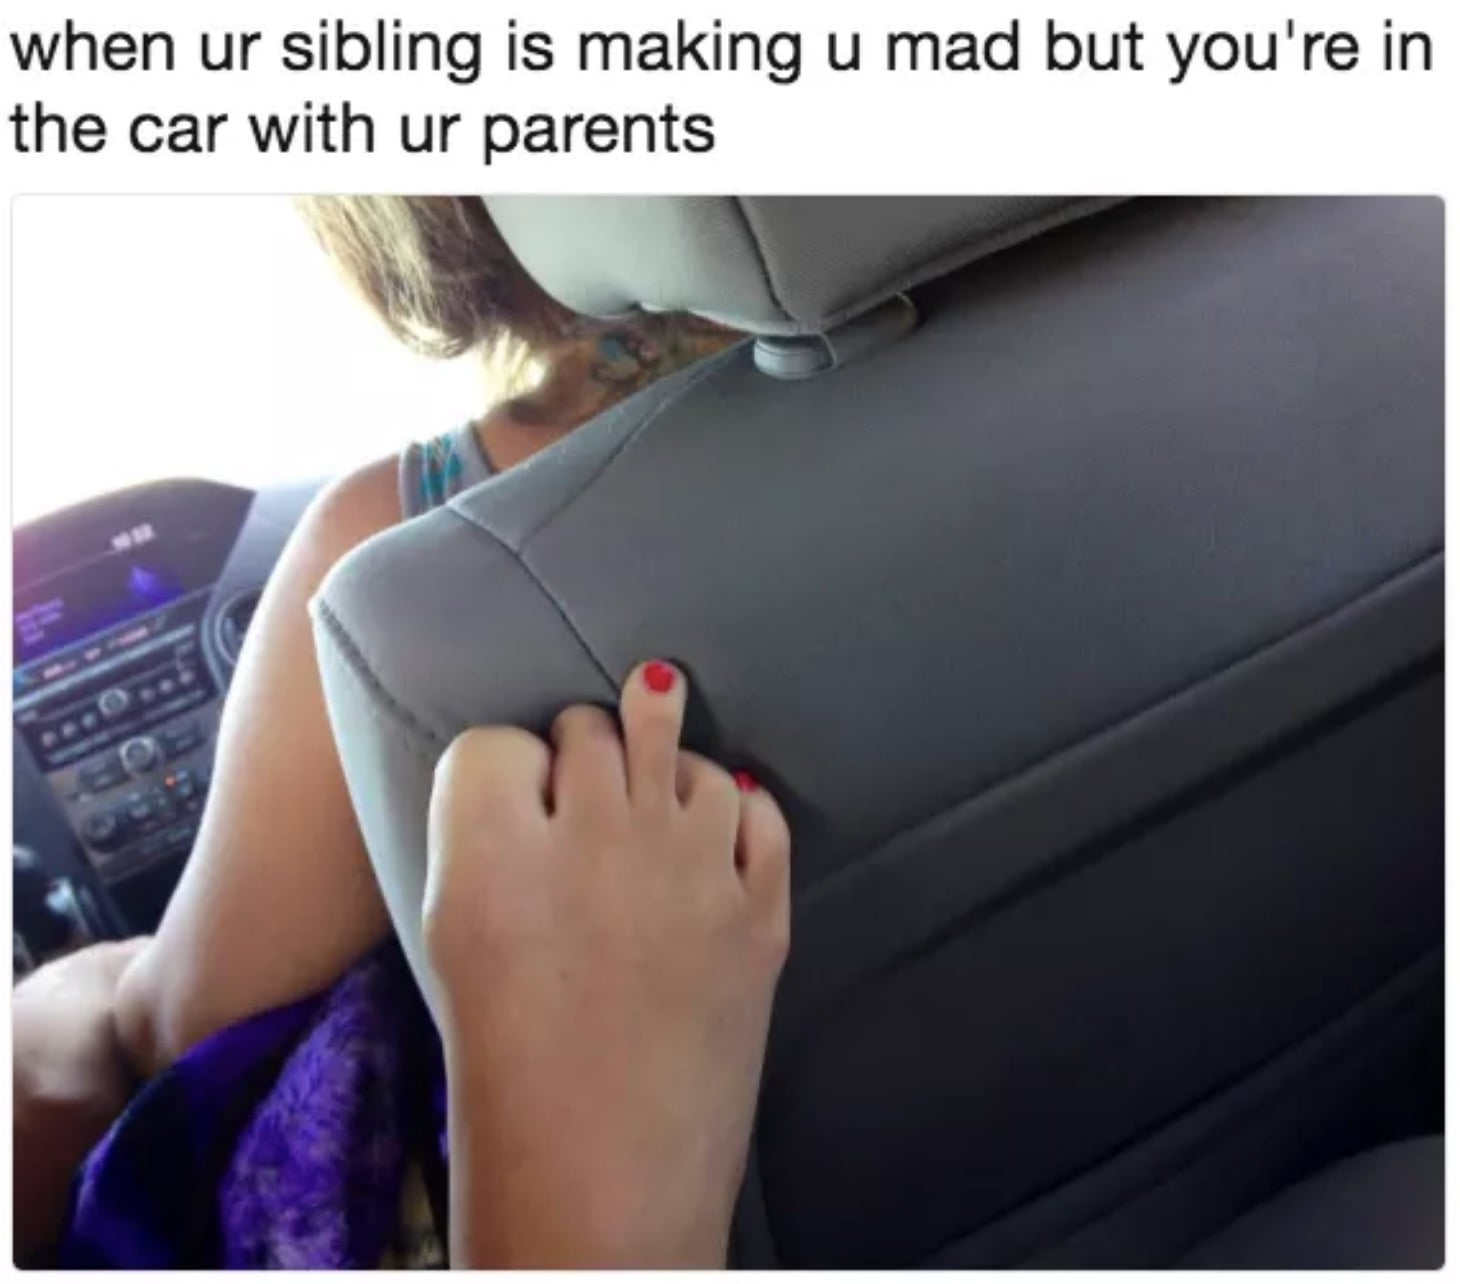 funny sibling meme when your sibling is mad but you are in the cars with your parents